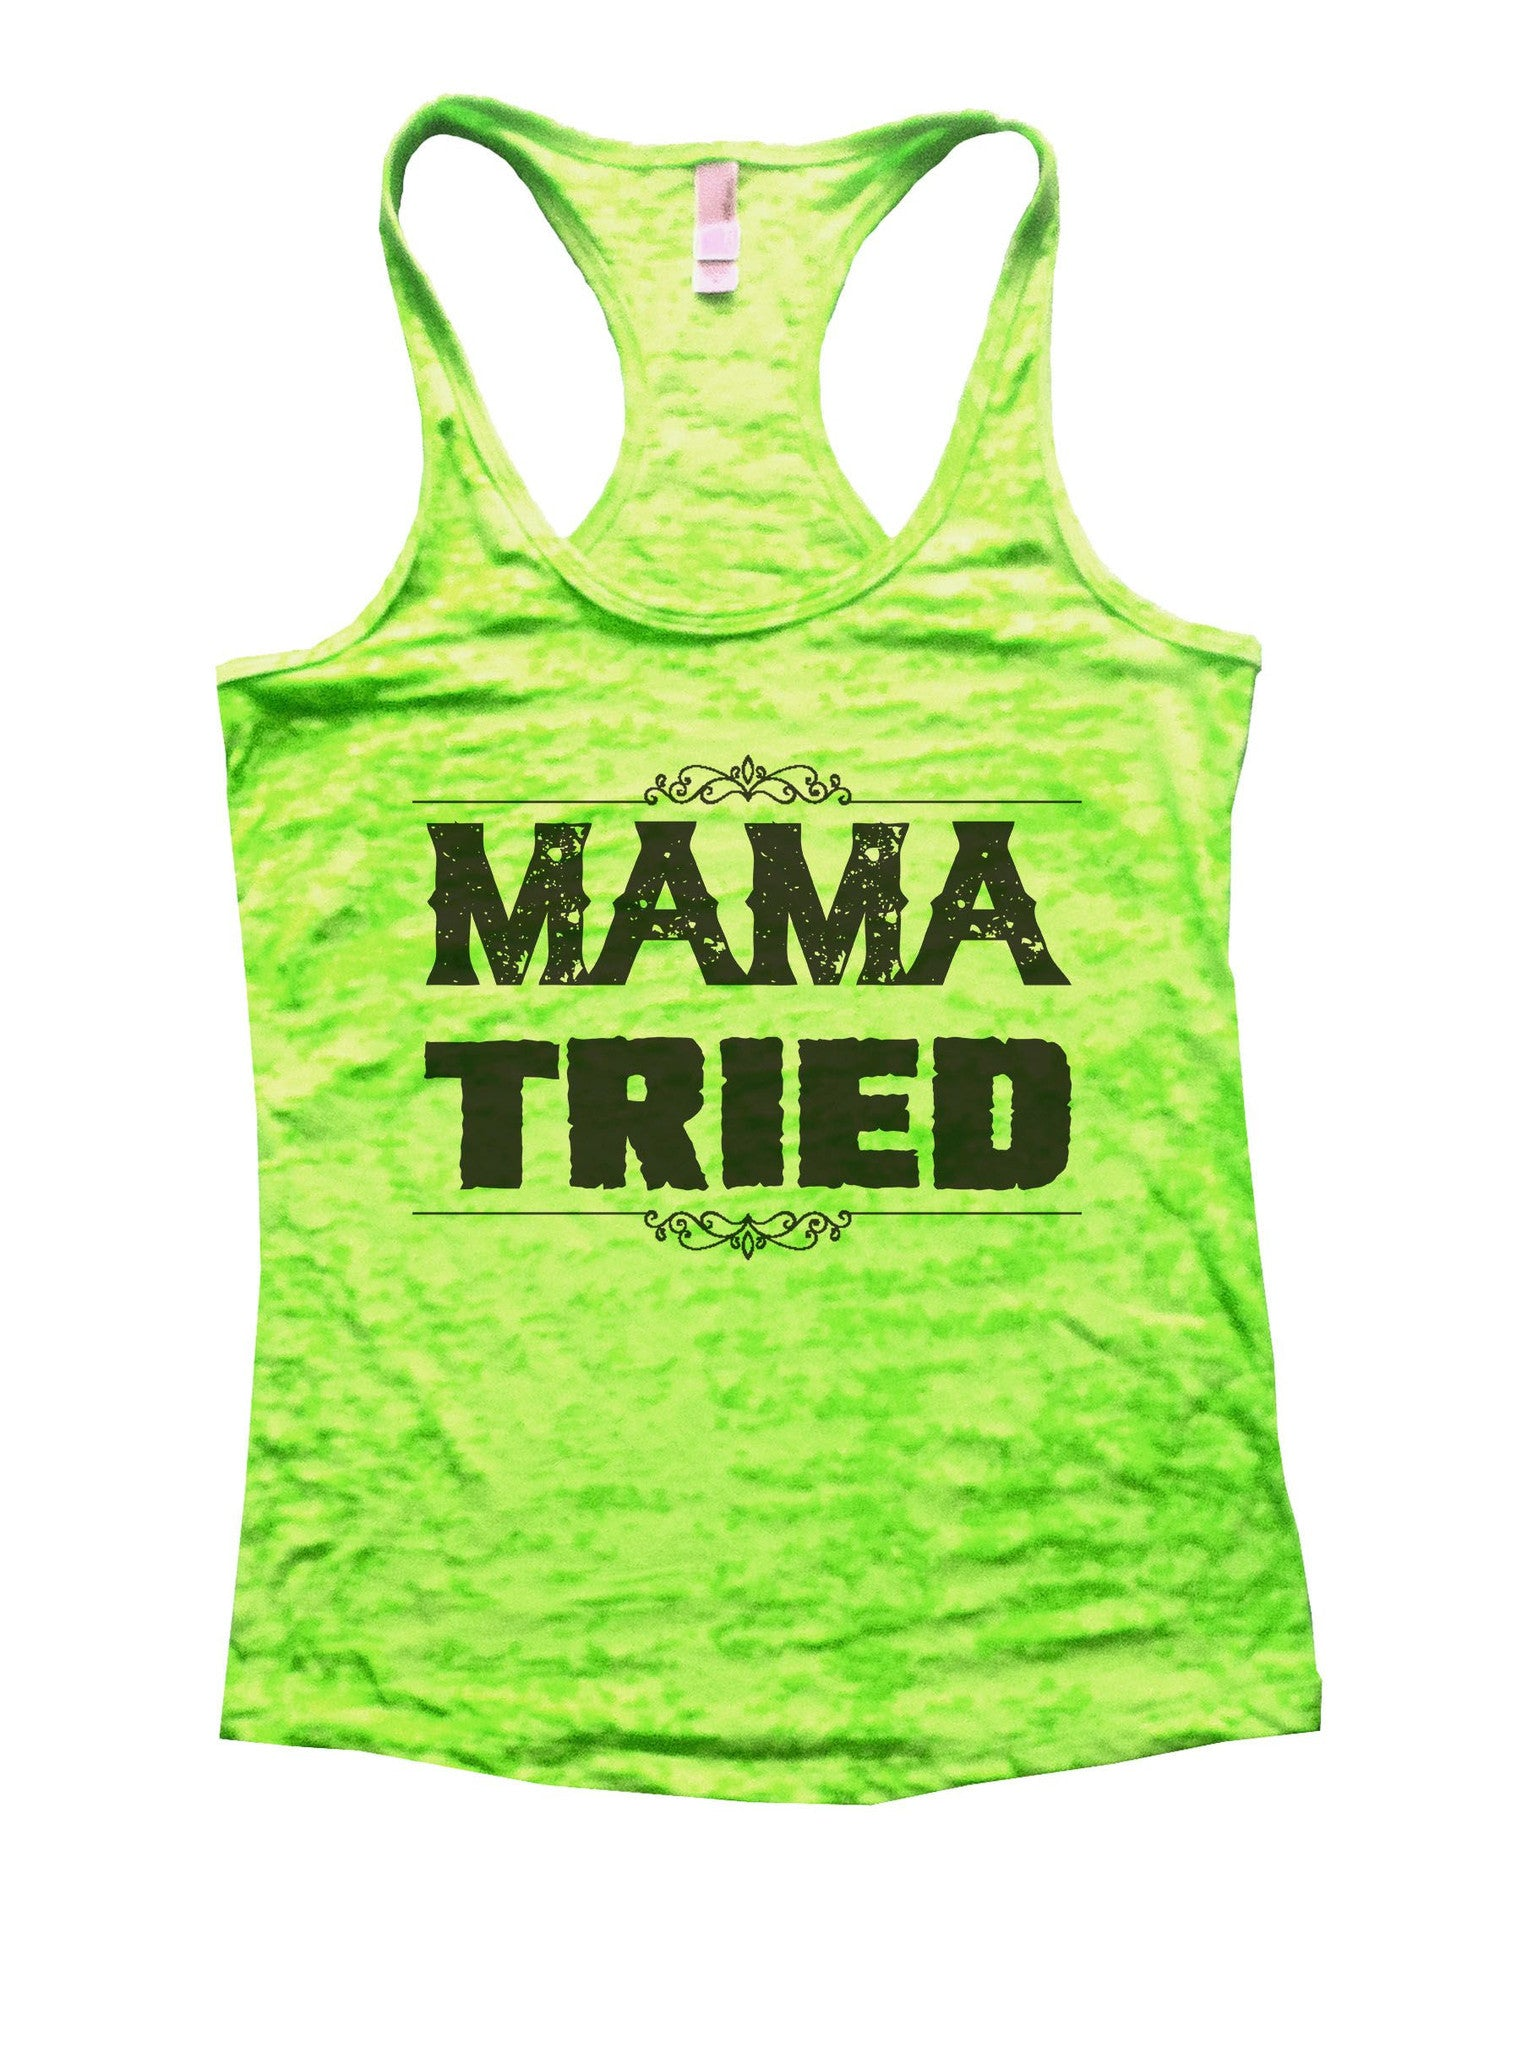 Mama Tried Burnout Tank Top By BurnoutTankTops.com - 886 - Funny Shirts Tank Tops Burnouts and Triblends  - 2